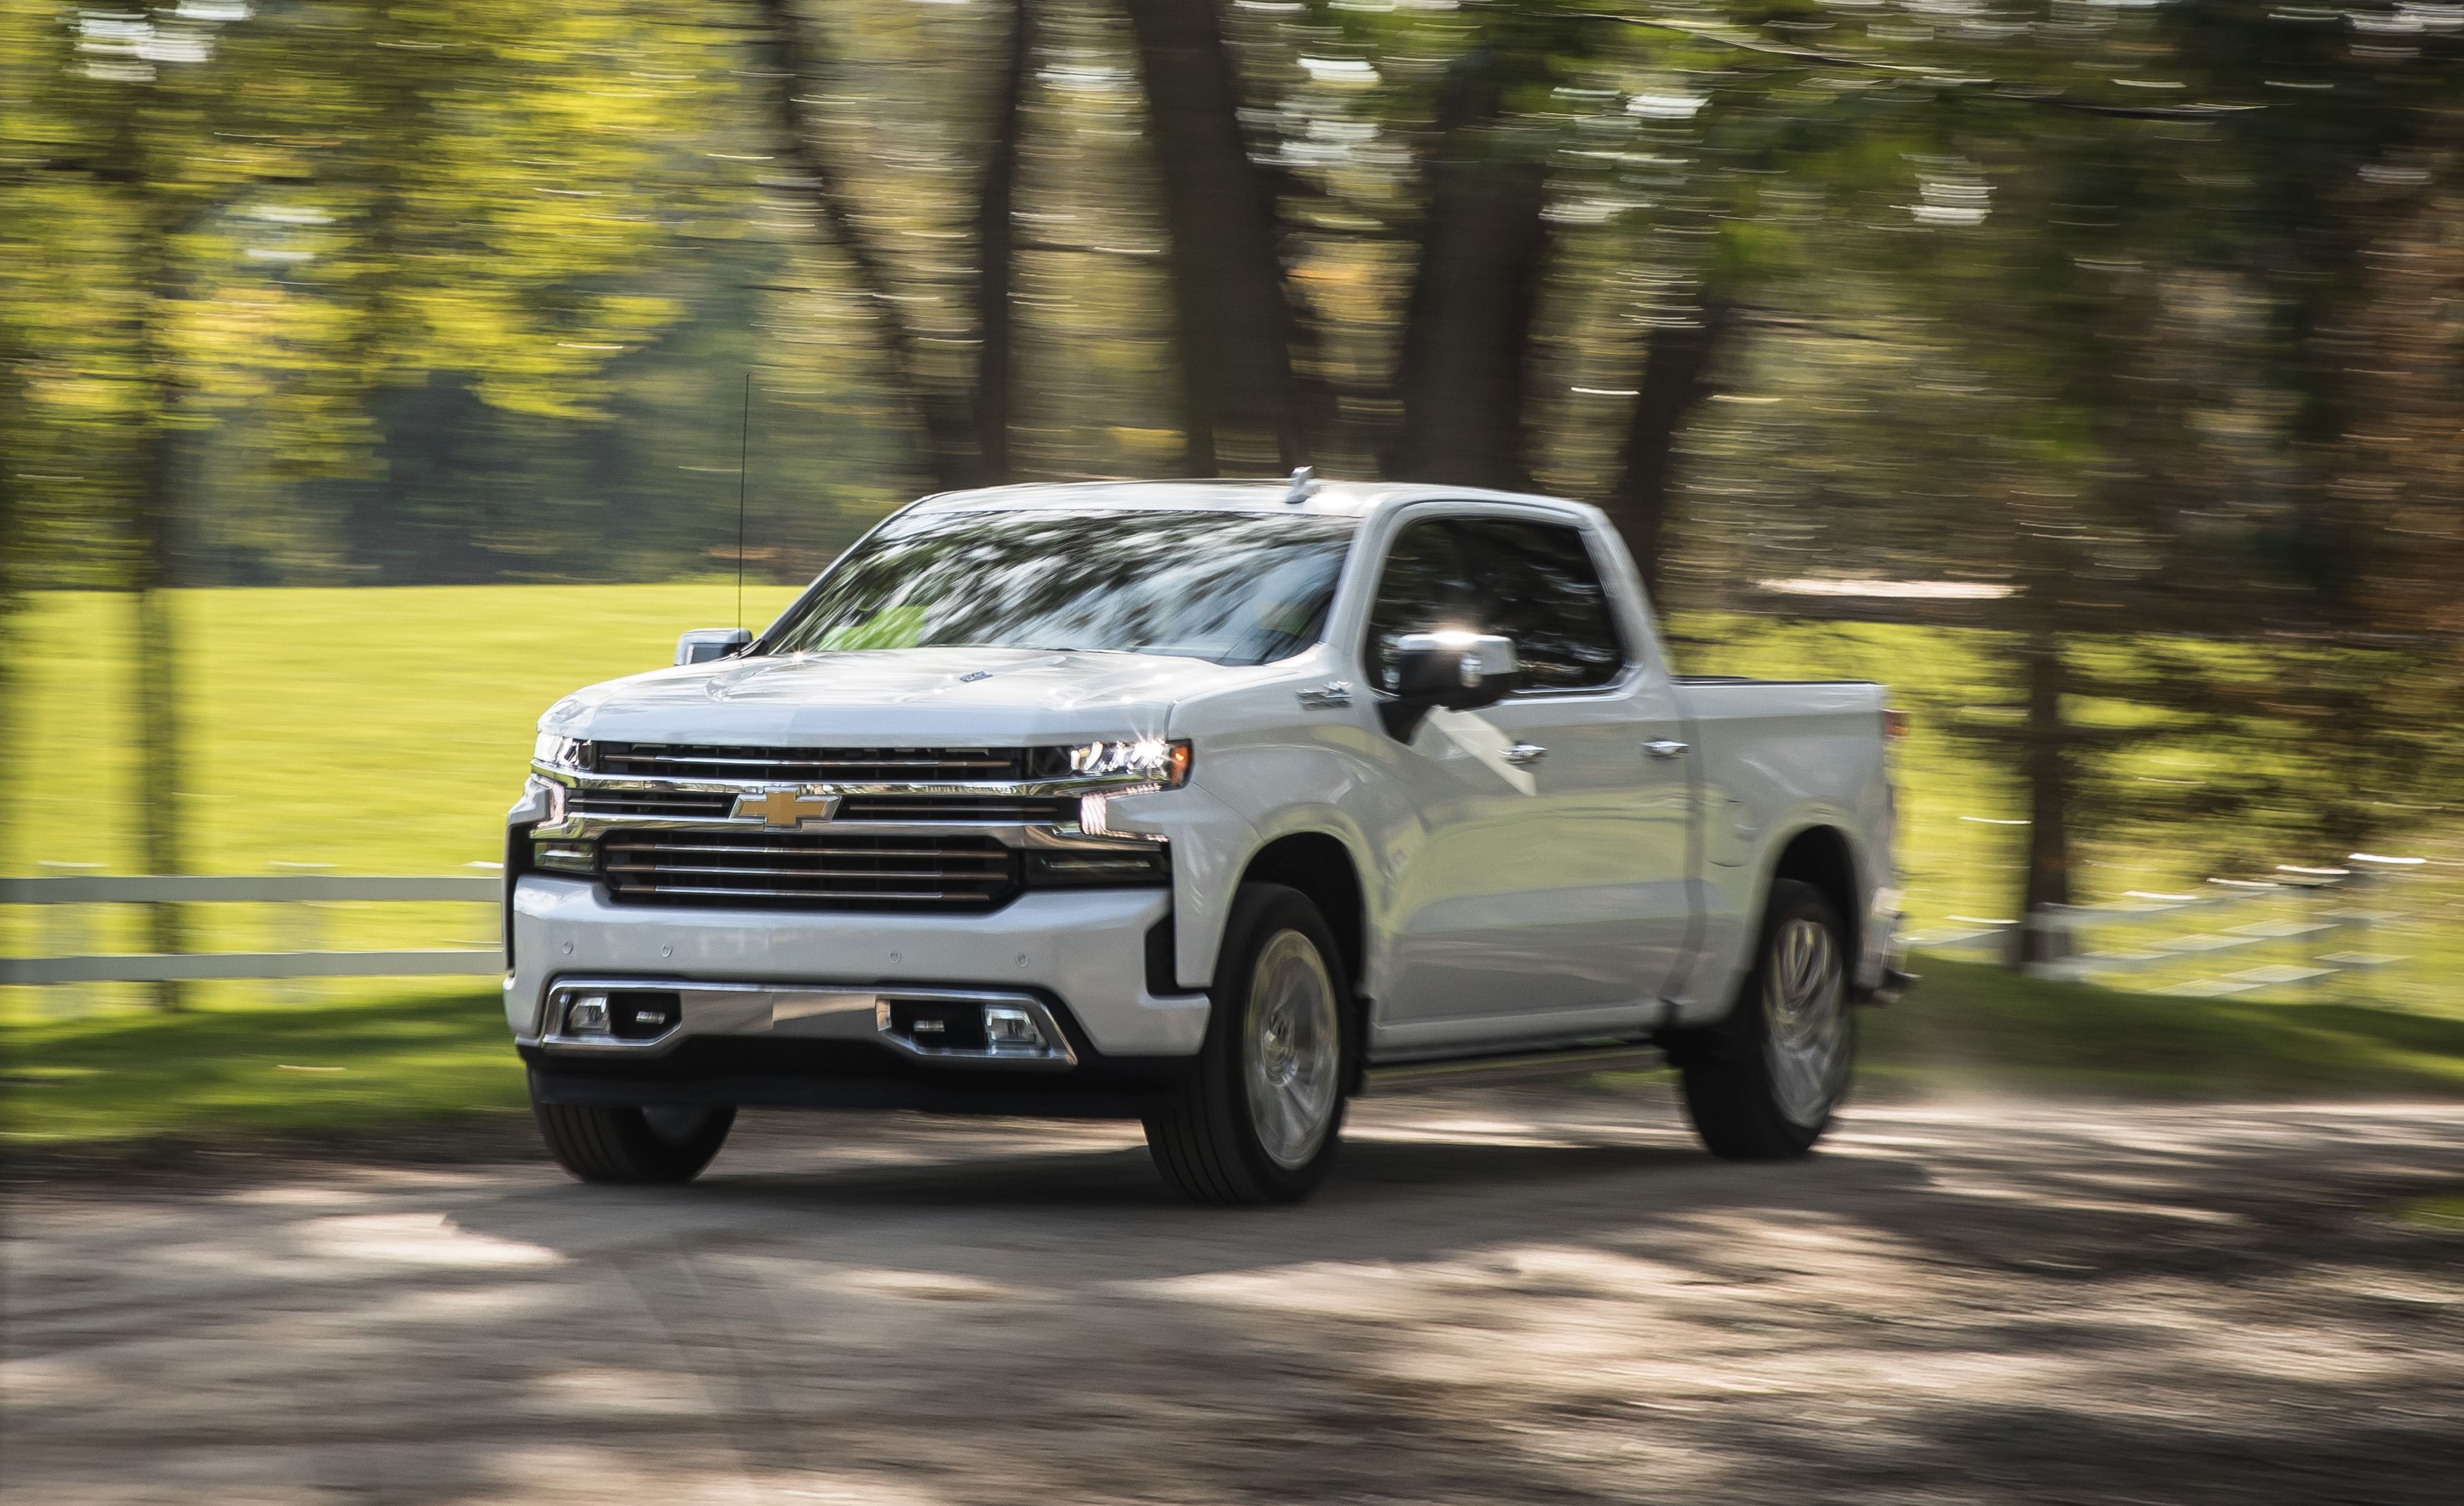 The Chevrolet Silverado 1500 6.2L Packs a Big Engine in a Big Truck